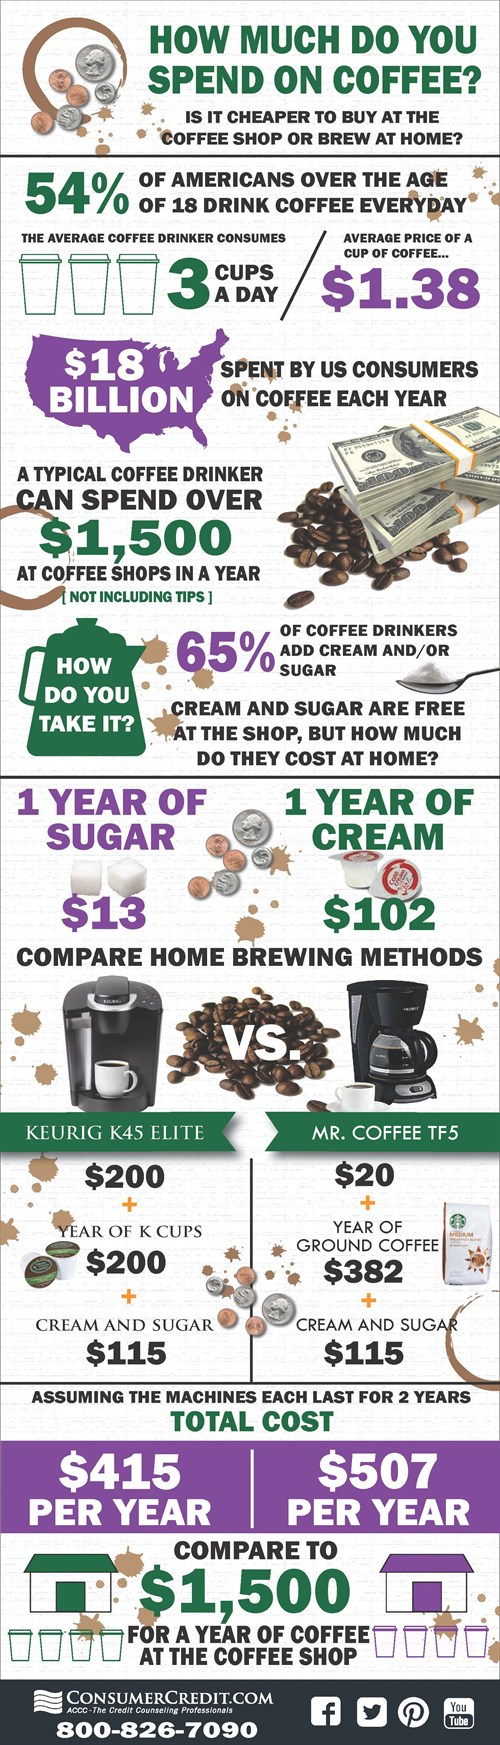 Compare The Cost Of Buying A Coffee At A Coffee Shop Vs Brewing